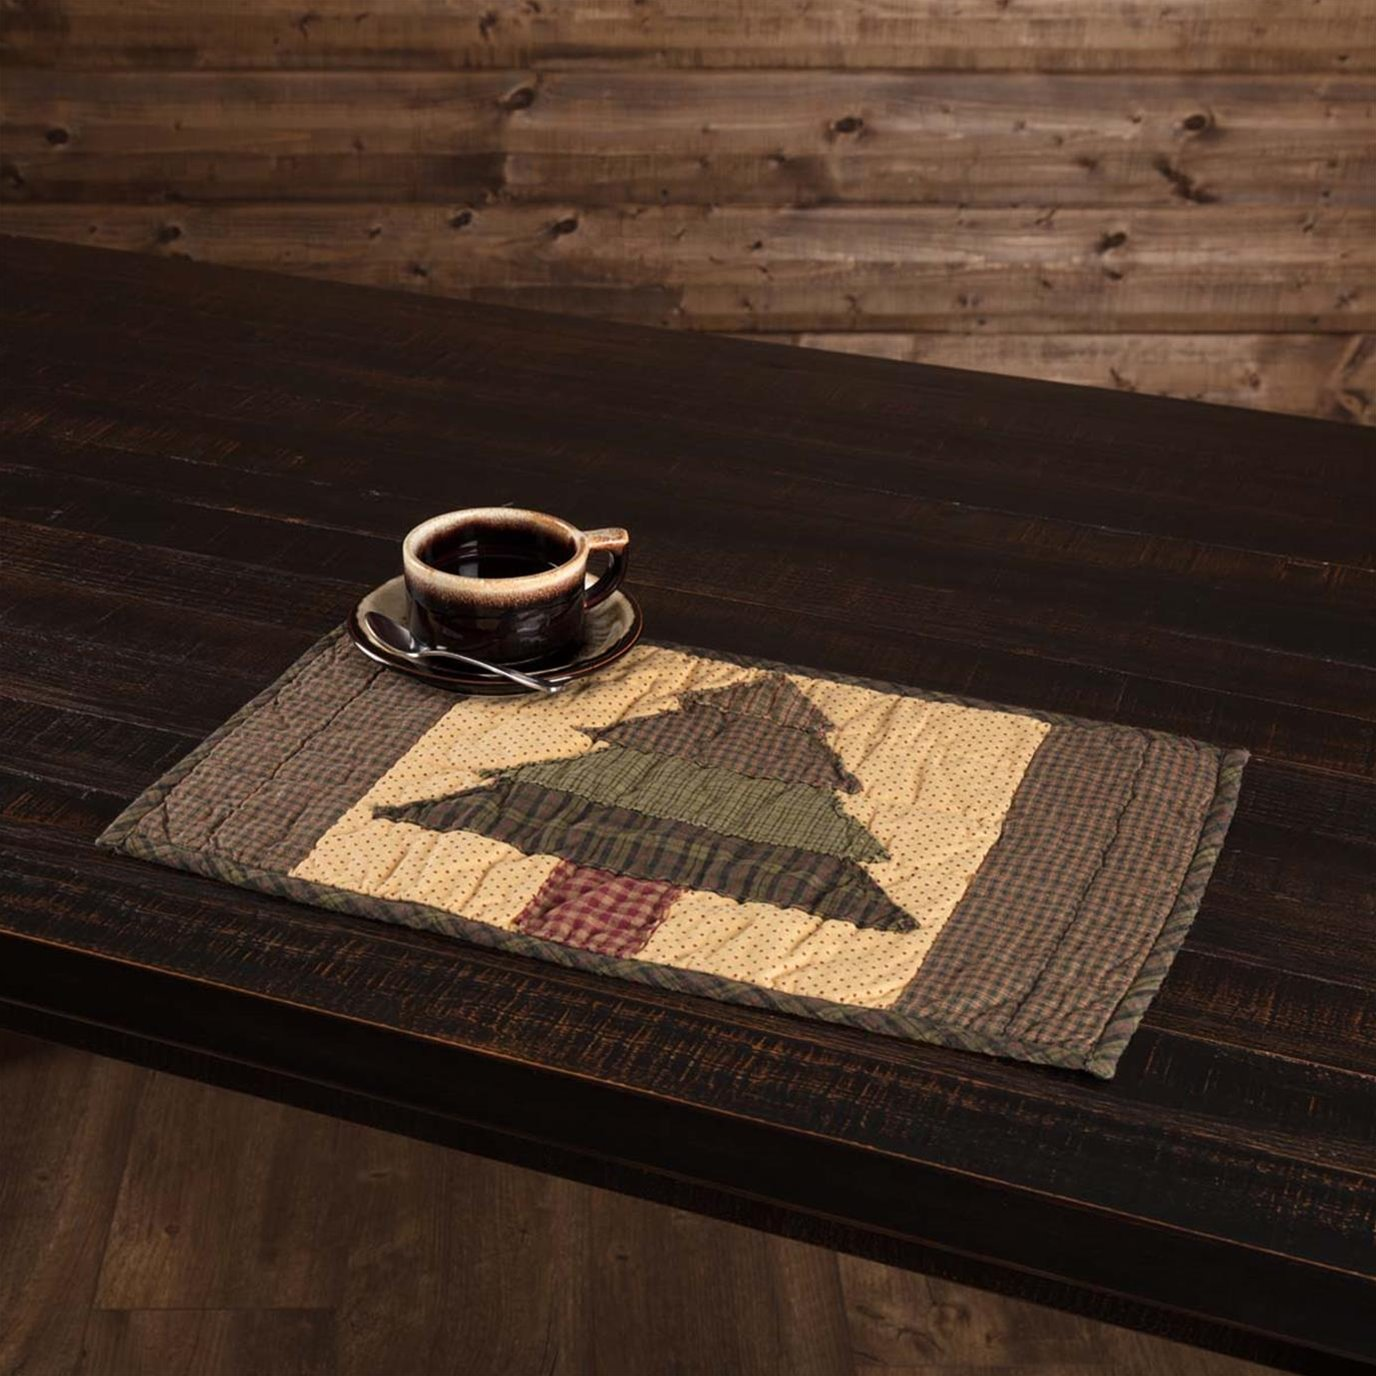 Sequoia Quilted Placemat Set of 6 12x18